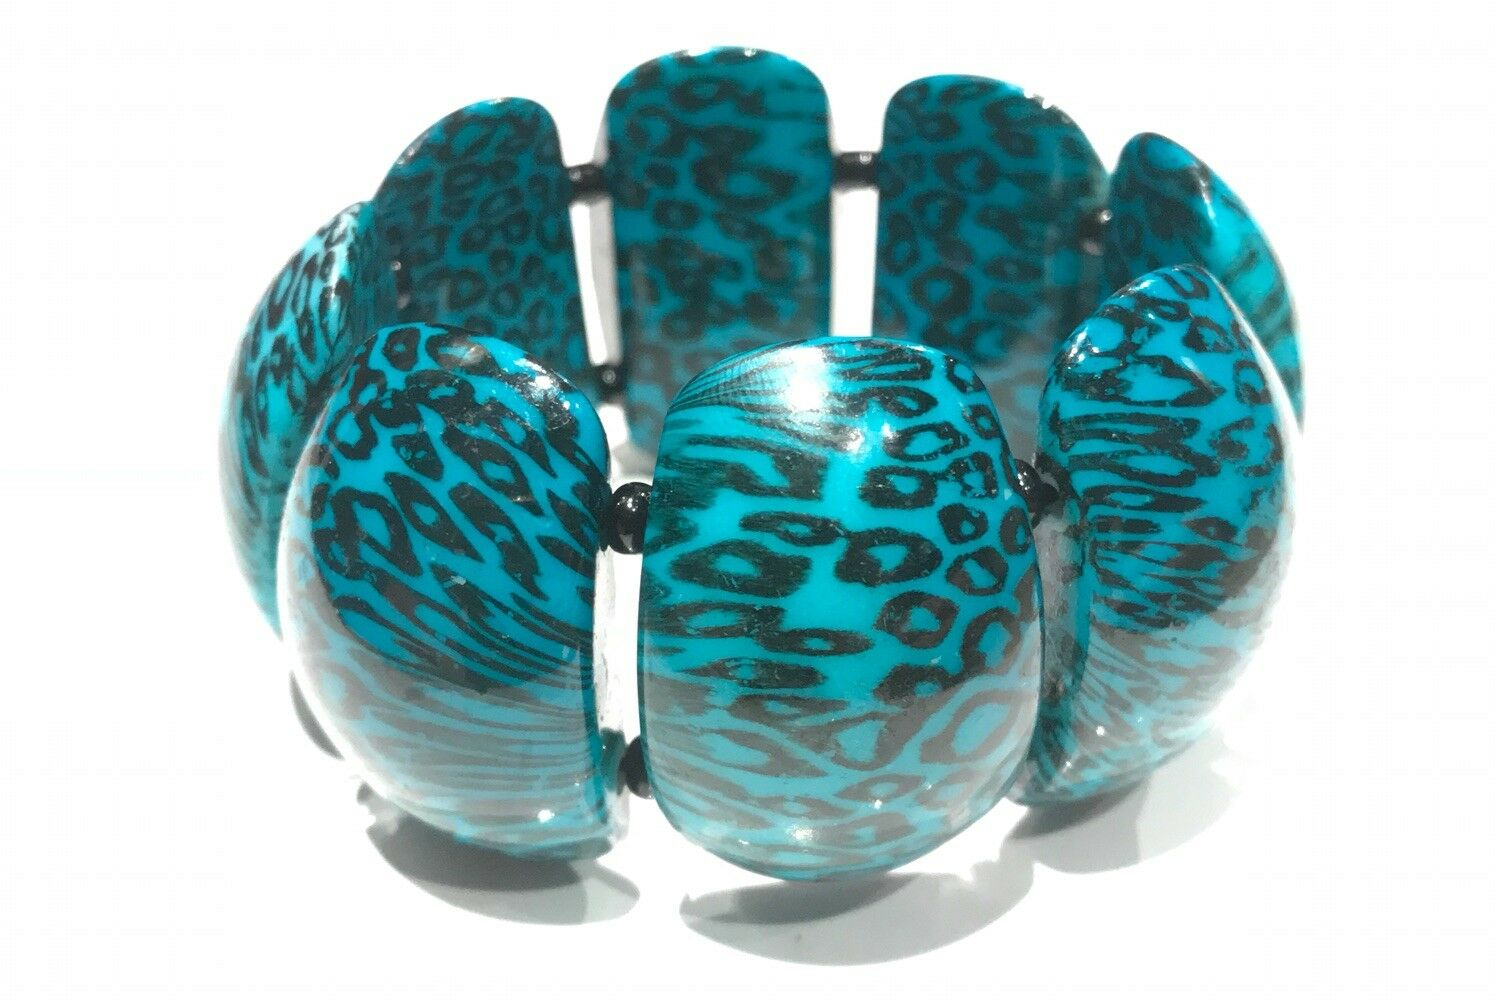 VINTAGE JEWELRY - 1980s Retro Patterned Turquoise… - image 1